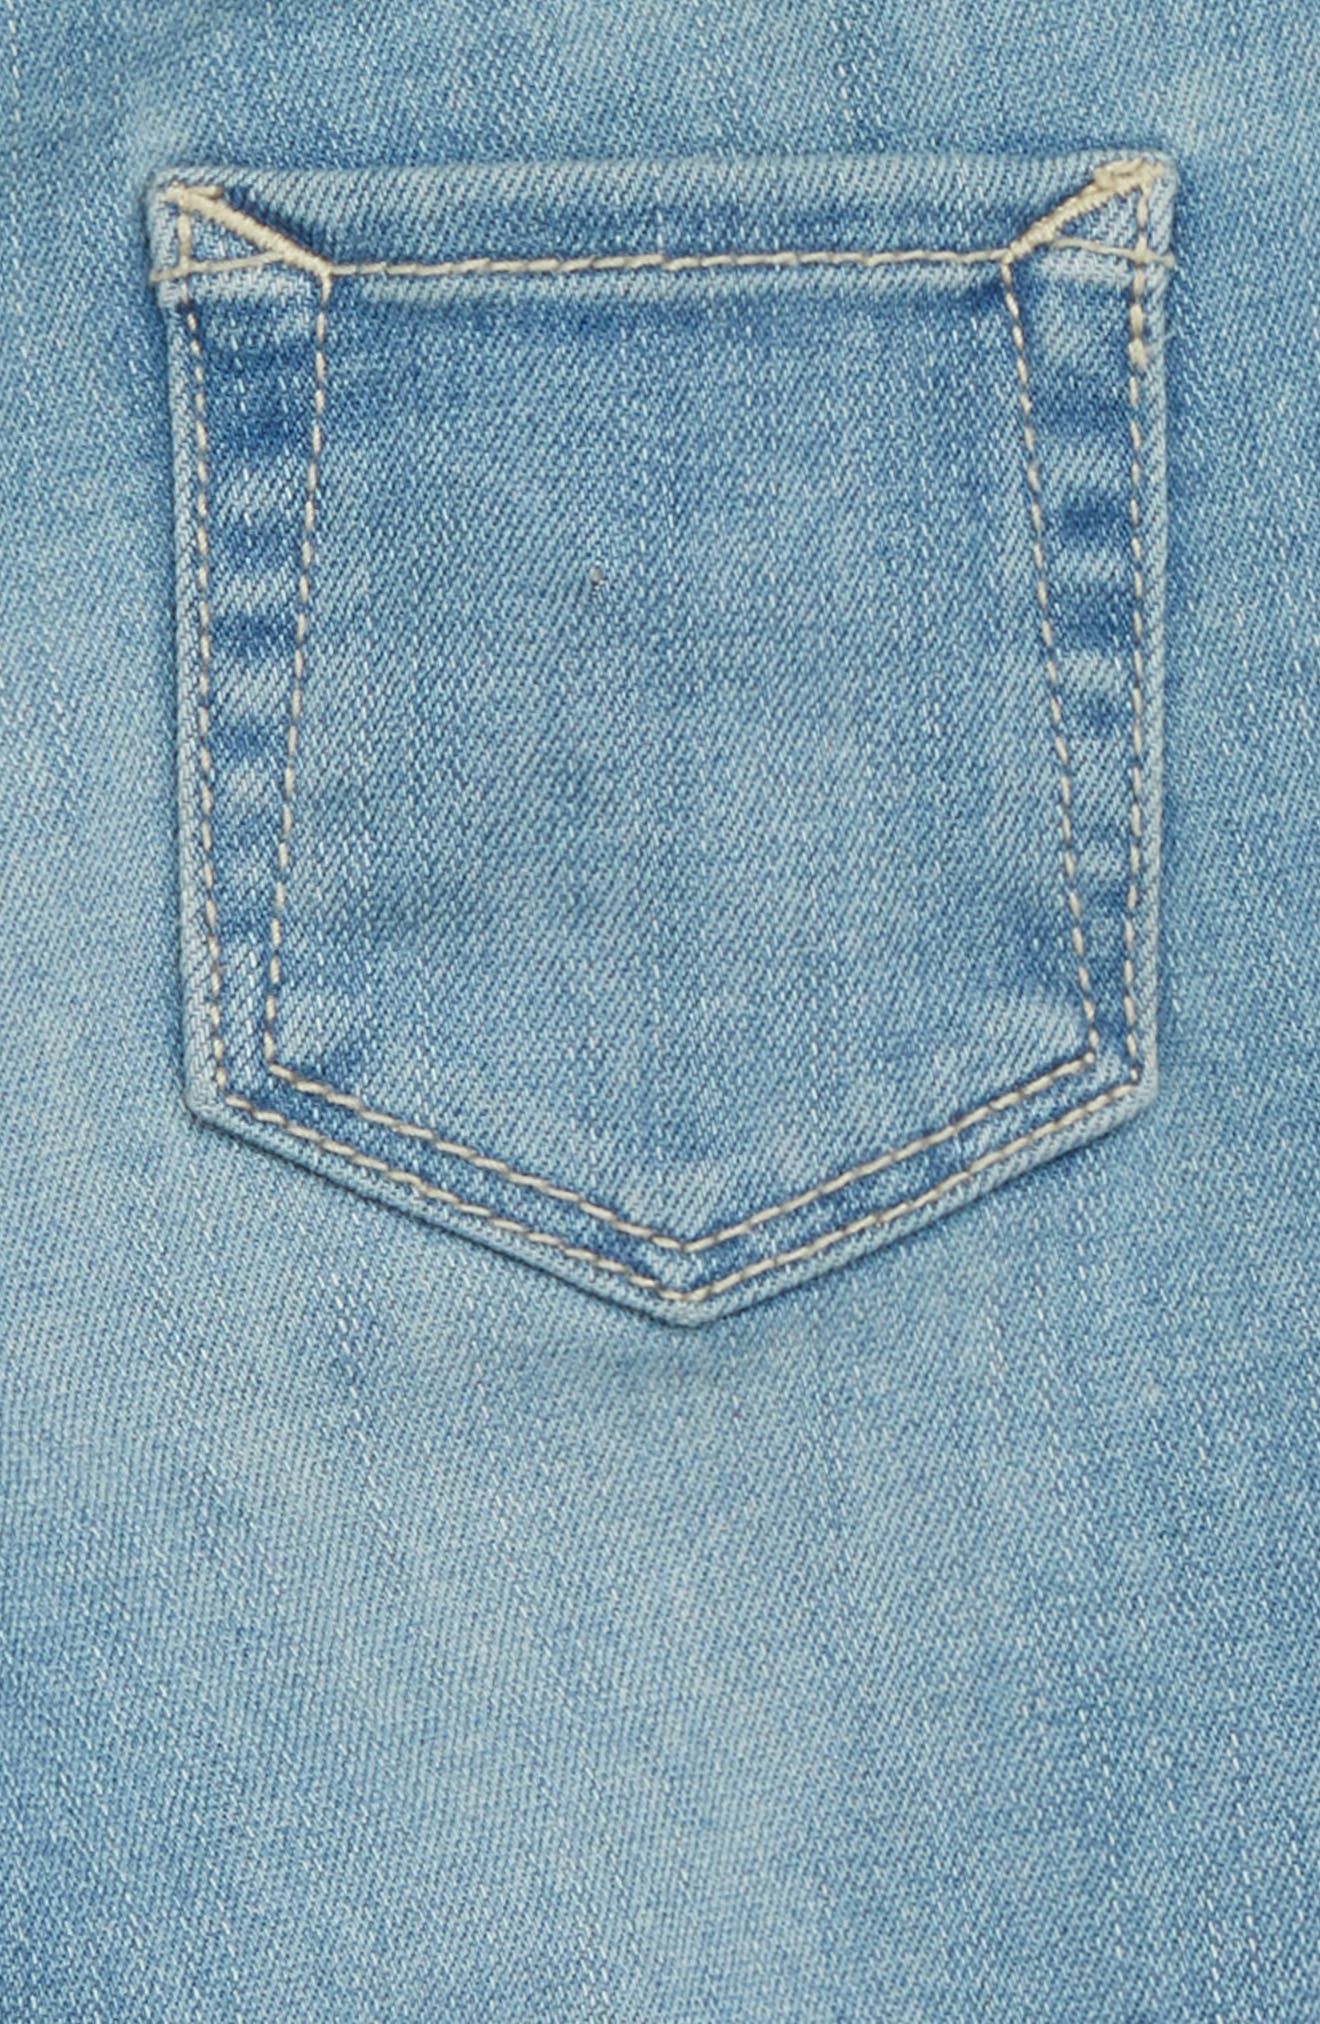 Star Patch Skinny Jeans,                             Alternate thumbnail 3, color,                             BLUEBIRD WASH